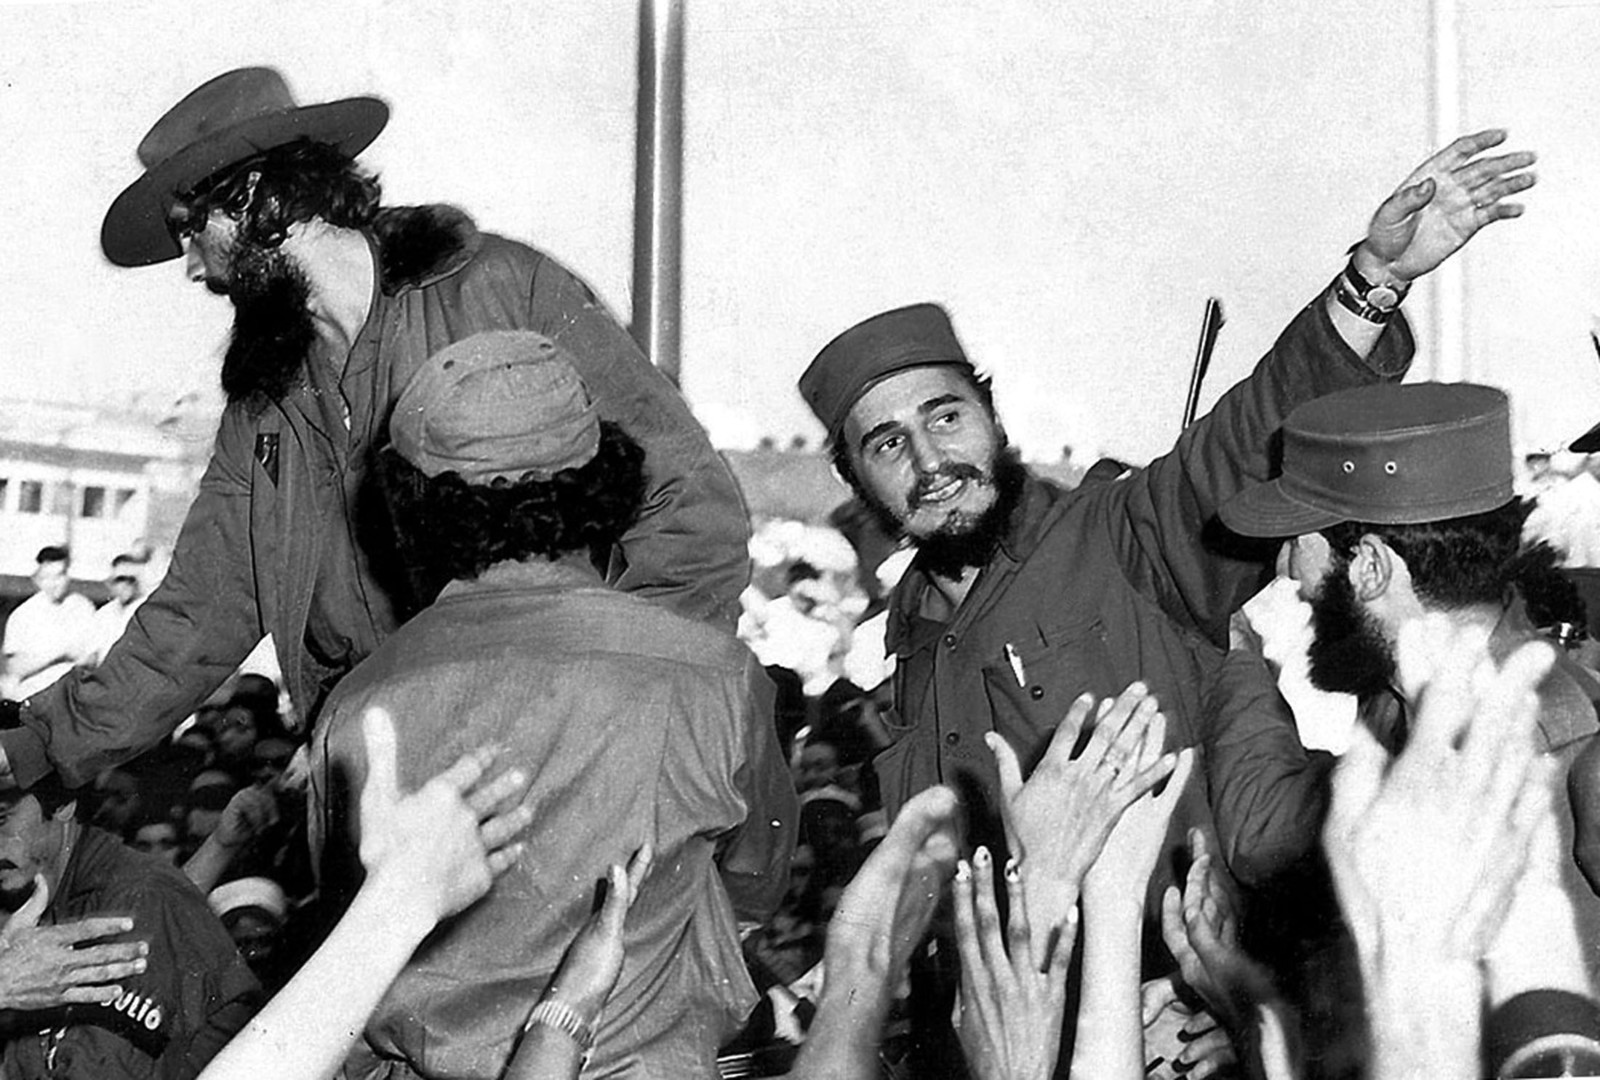 the rebellion of fidel castro Articles and reflections by fidel nato, war, lies and business february 21, 2011 | fidel castro ruz the revolutionary rebellion in egypt.